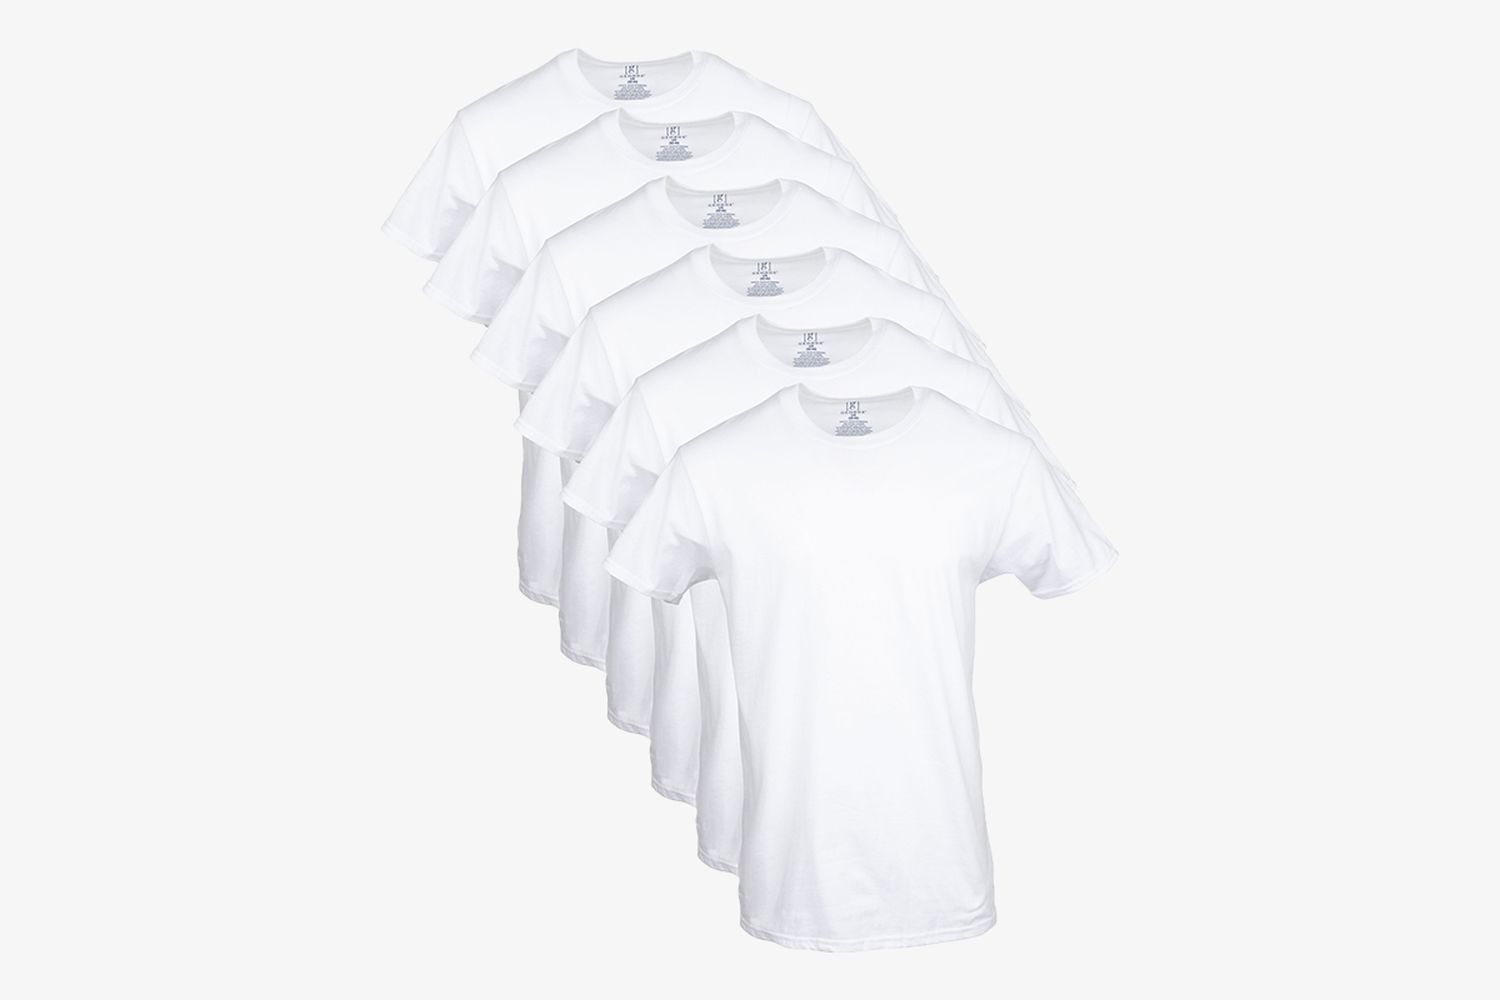 Men's Crew T-Shirts, 6-Pack